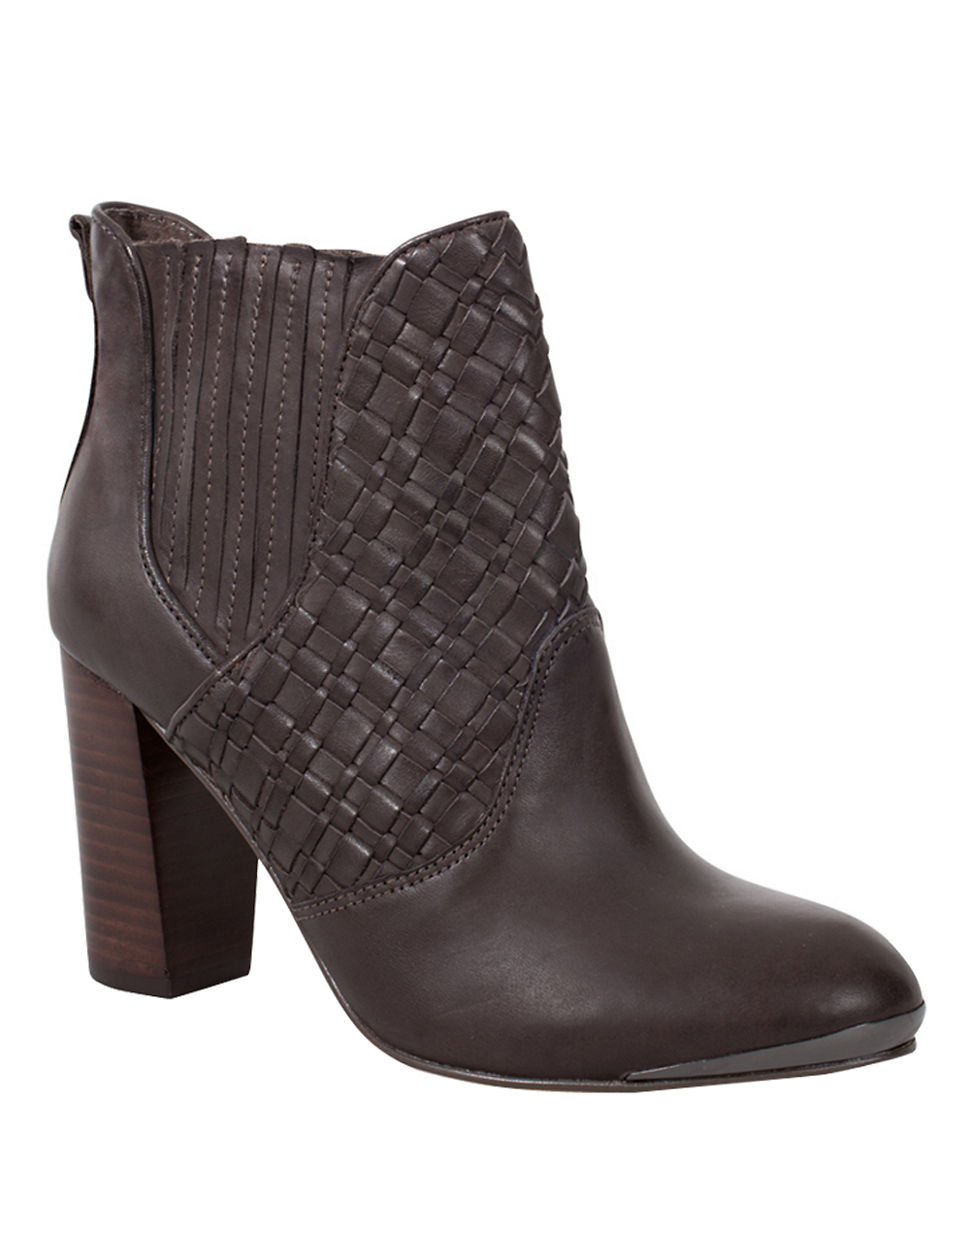 elliott lucca dina high heel leather boots in gray lyst